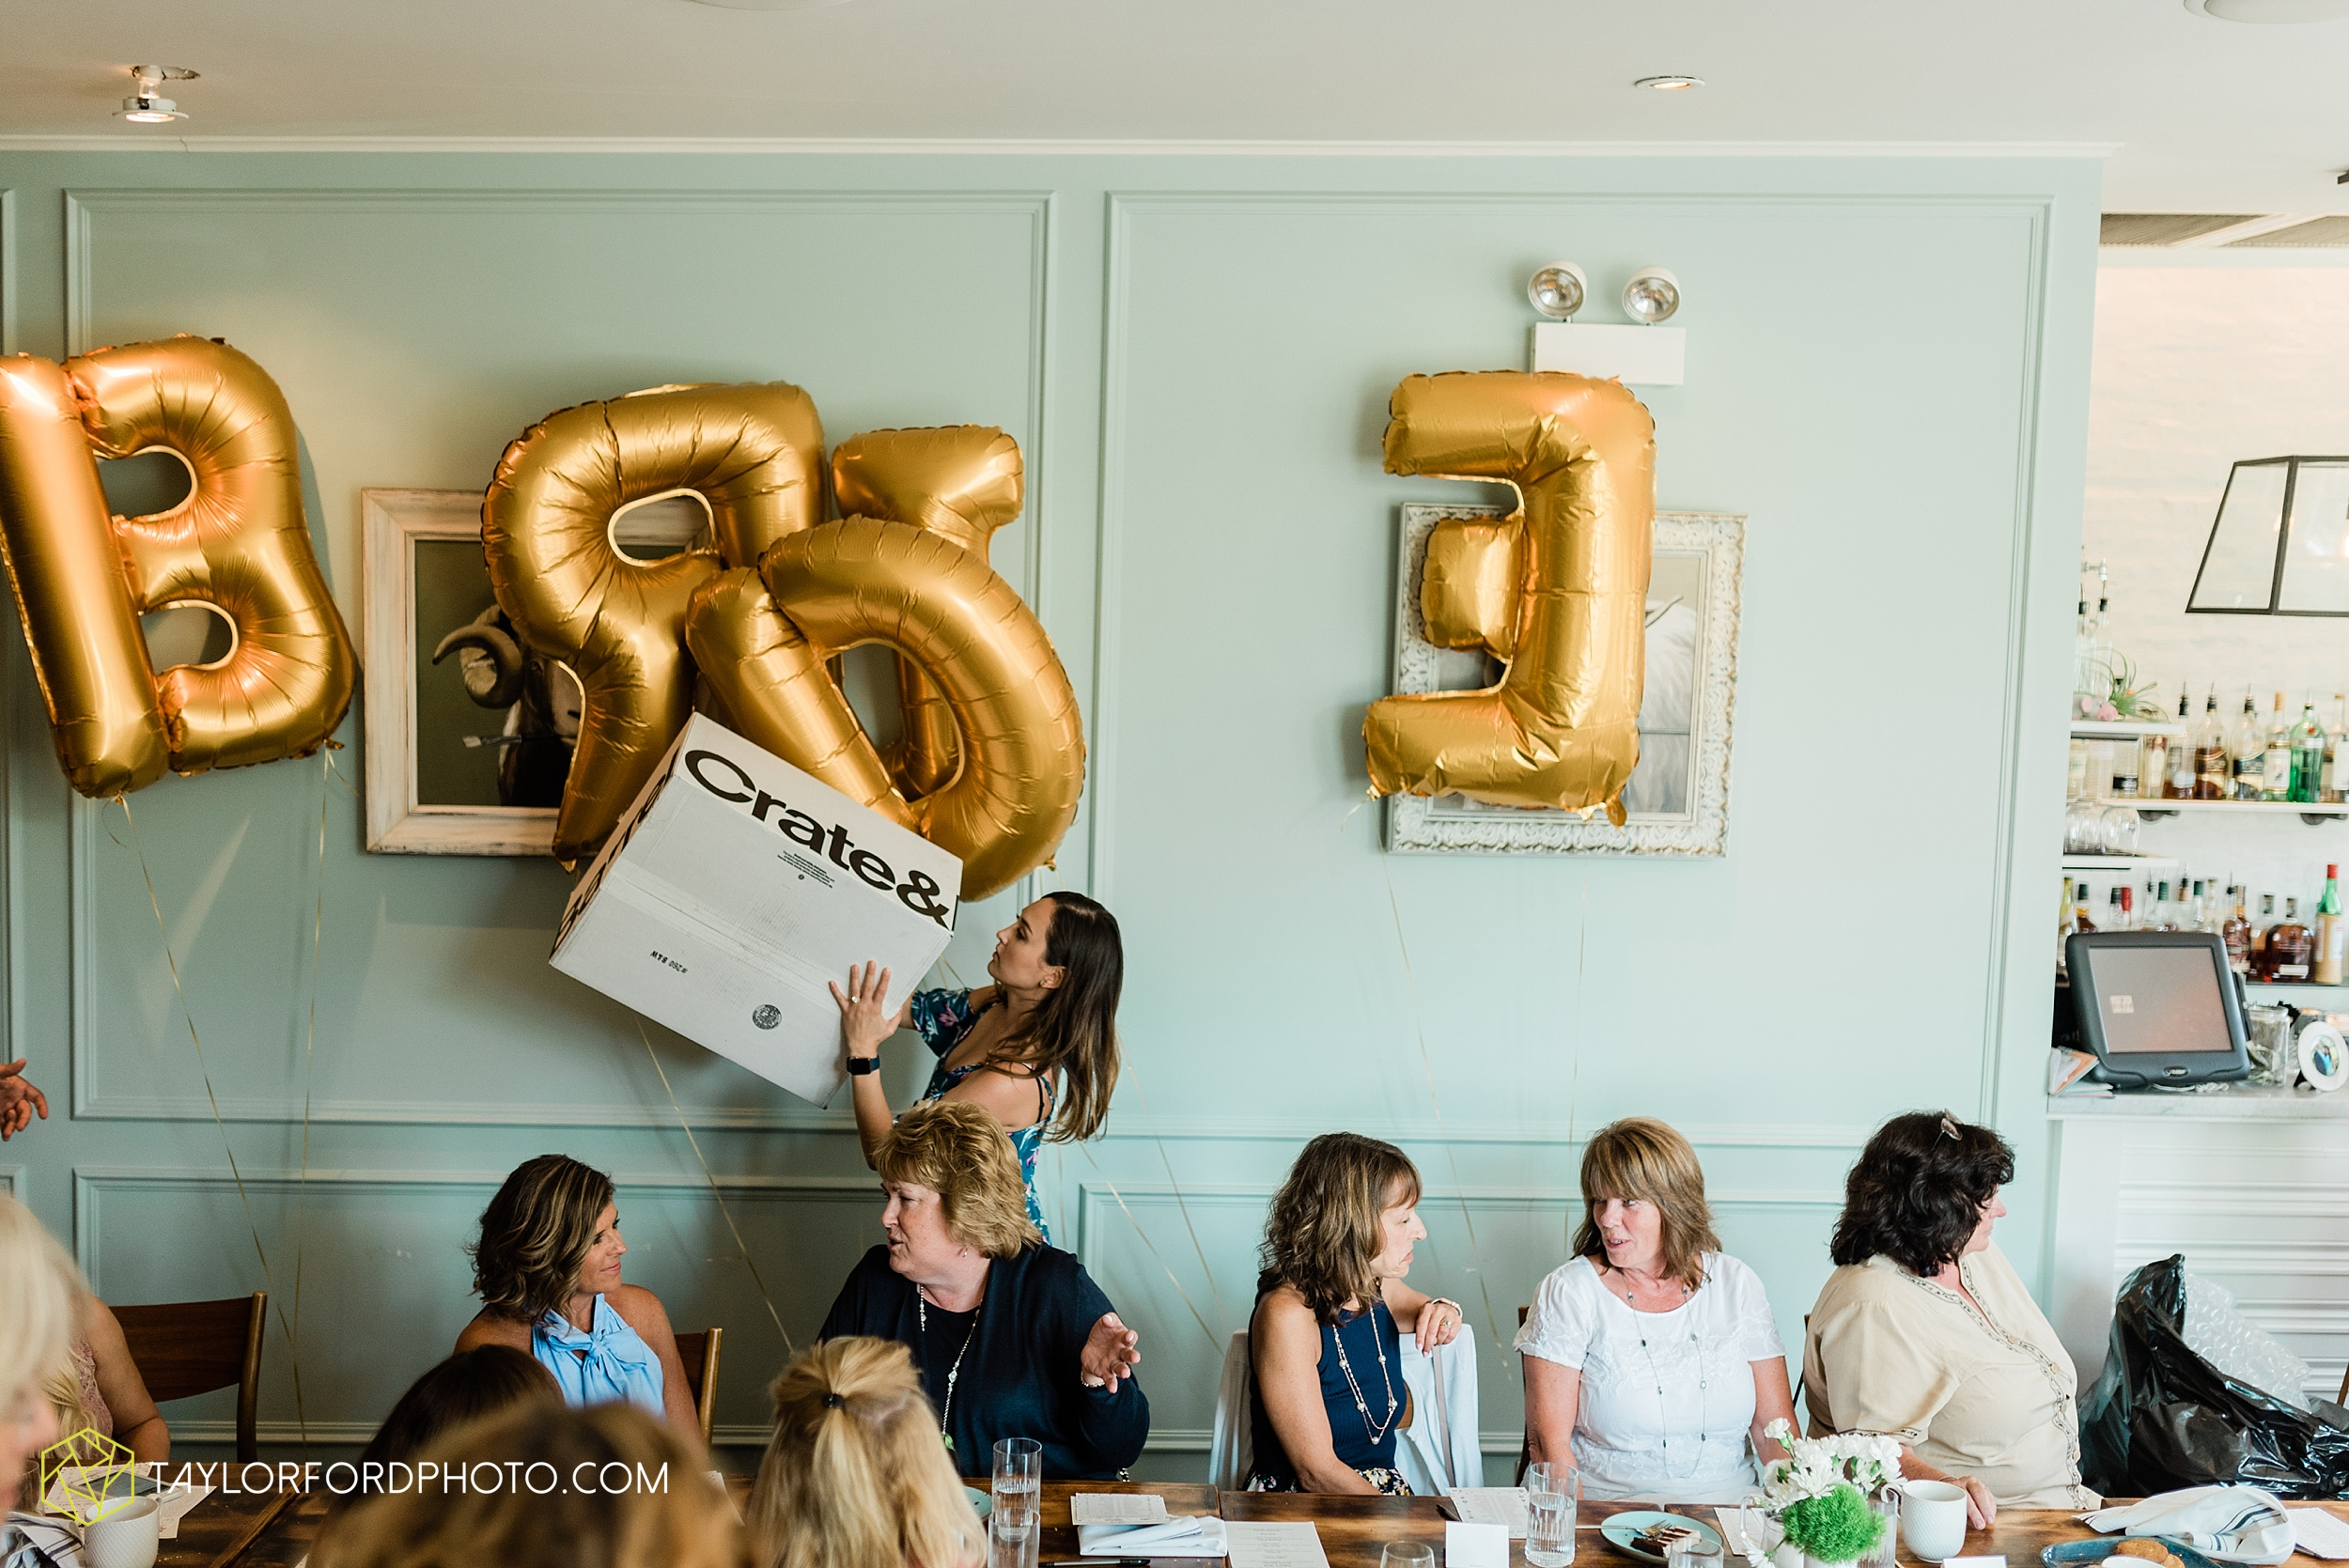 chicago-illinois-bridal-shower-little-goat-diner-west-loop-wedding-photographer-taylor-ford-photographer_8857.jpg